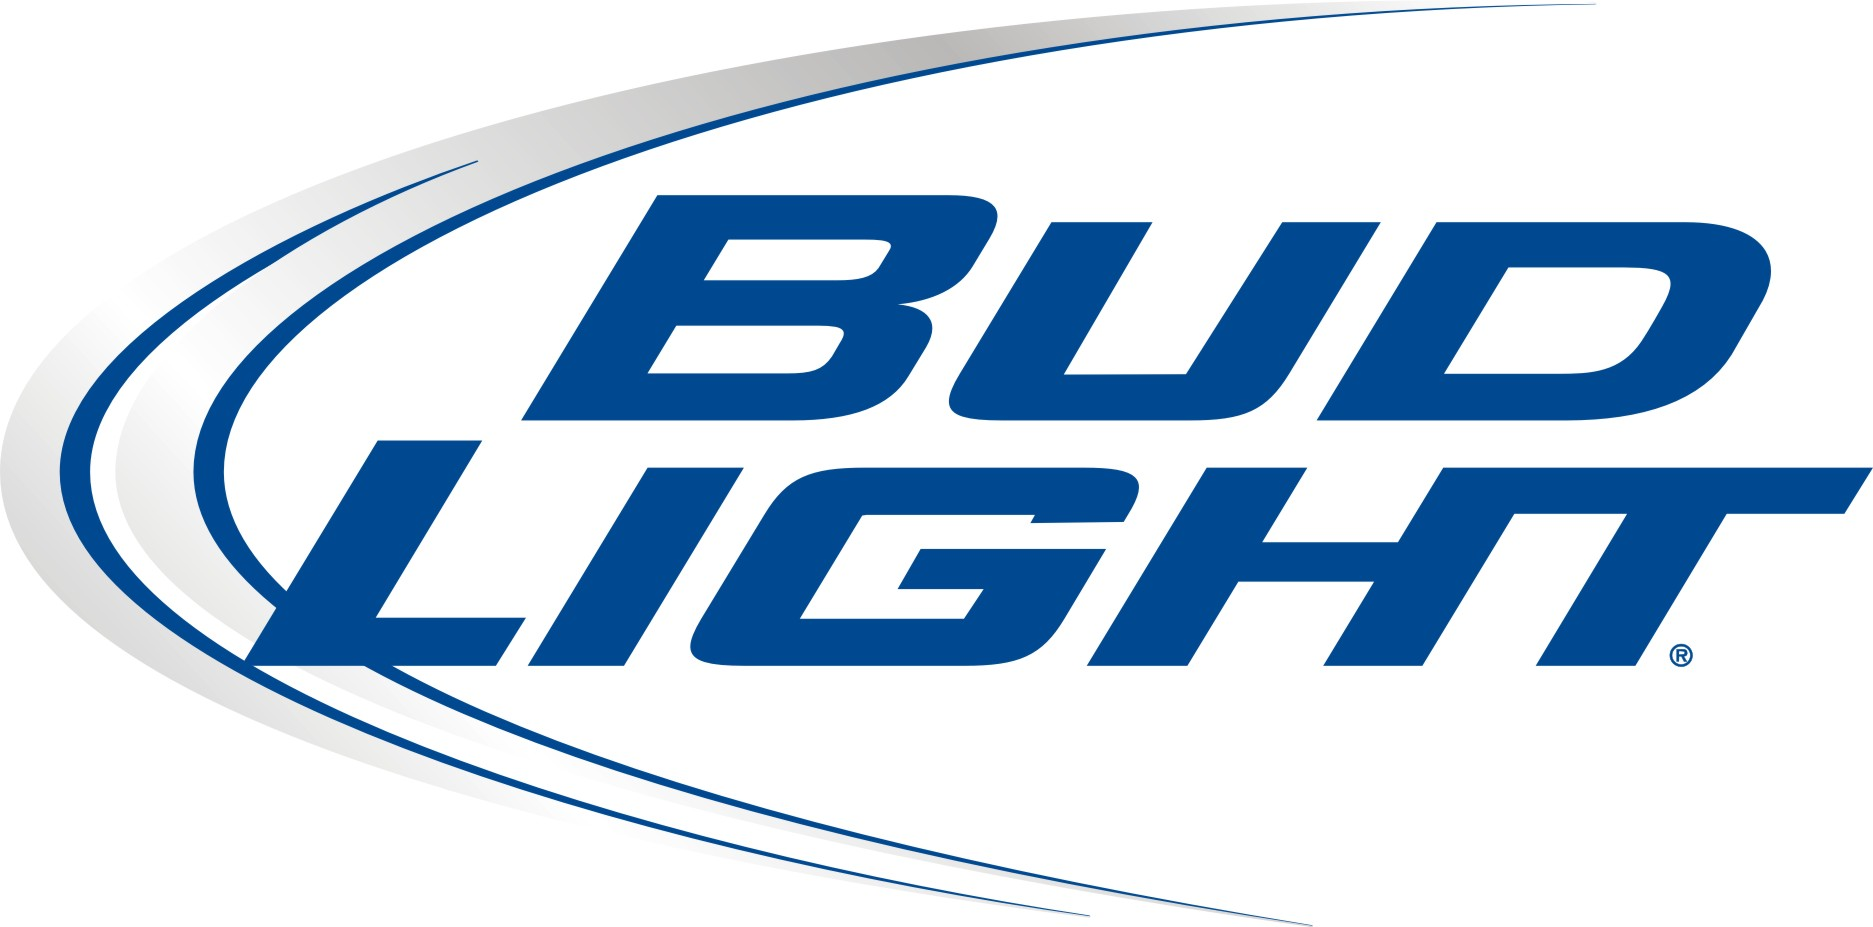 Get free high quality HD wallpapers bud light beer logo